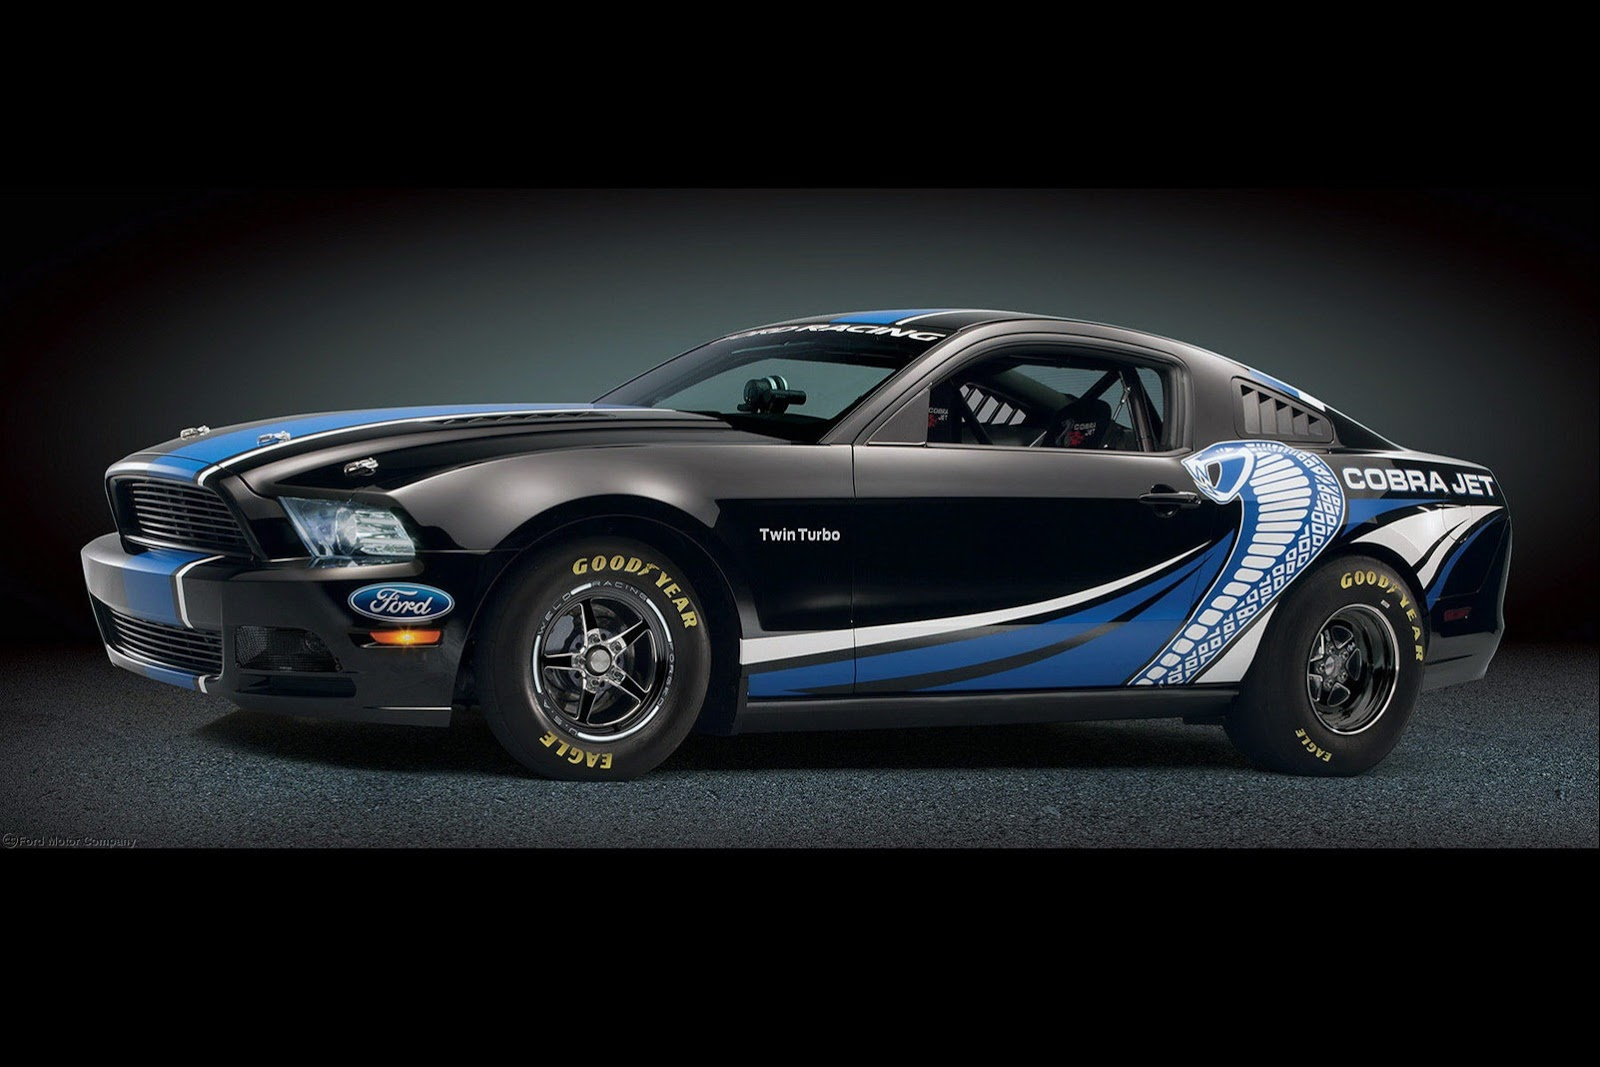 Ford Mustang Cobra Jet Twin Turbo Concept Desktop Wallpaper HD